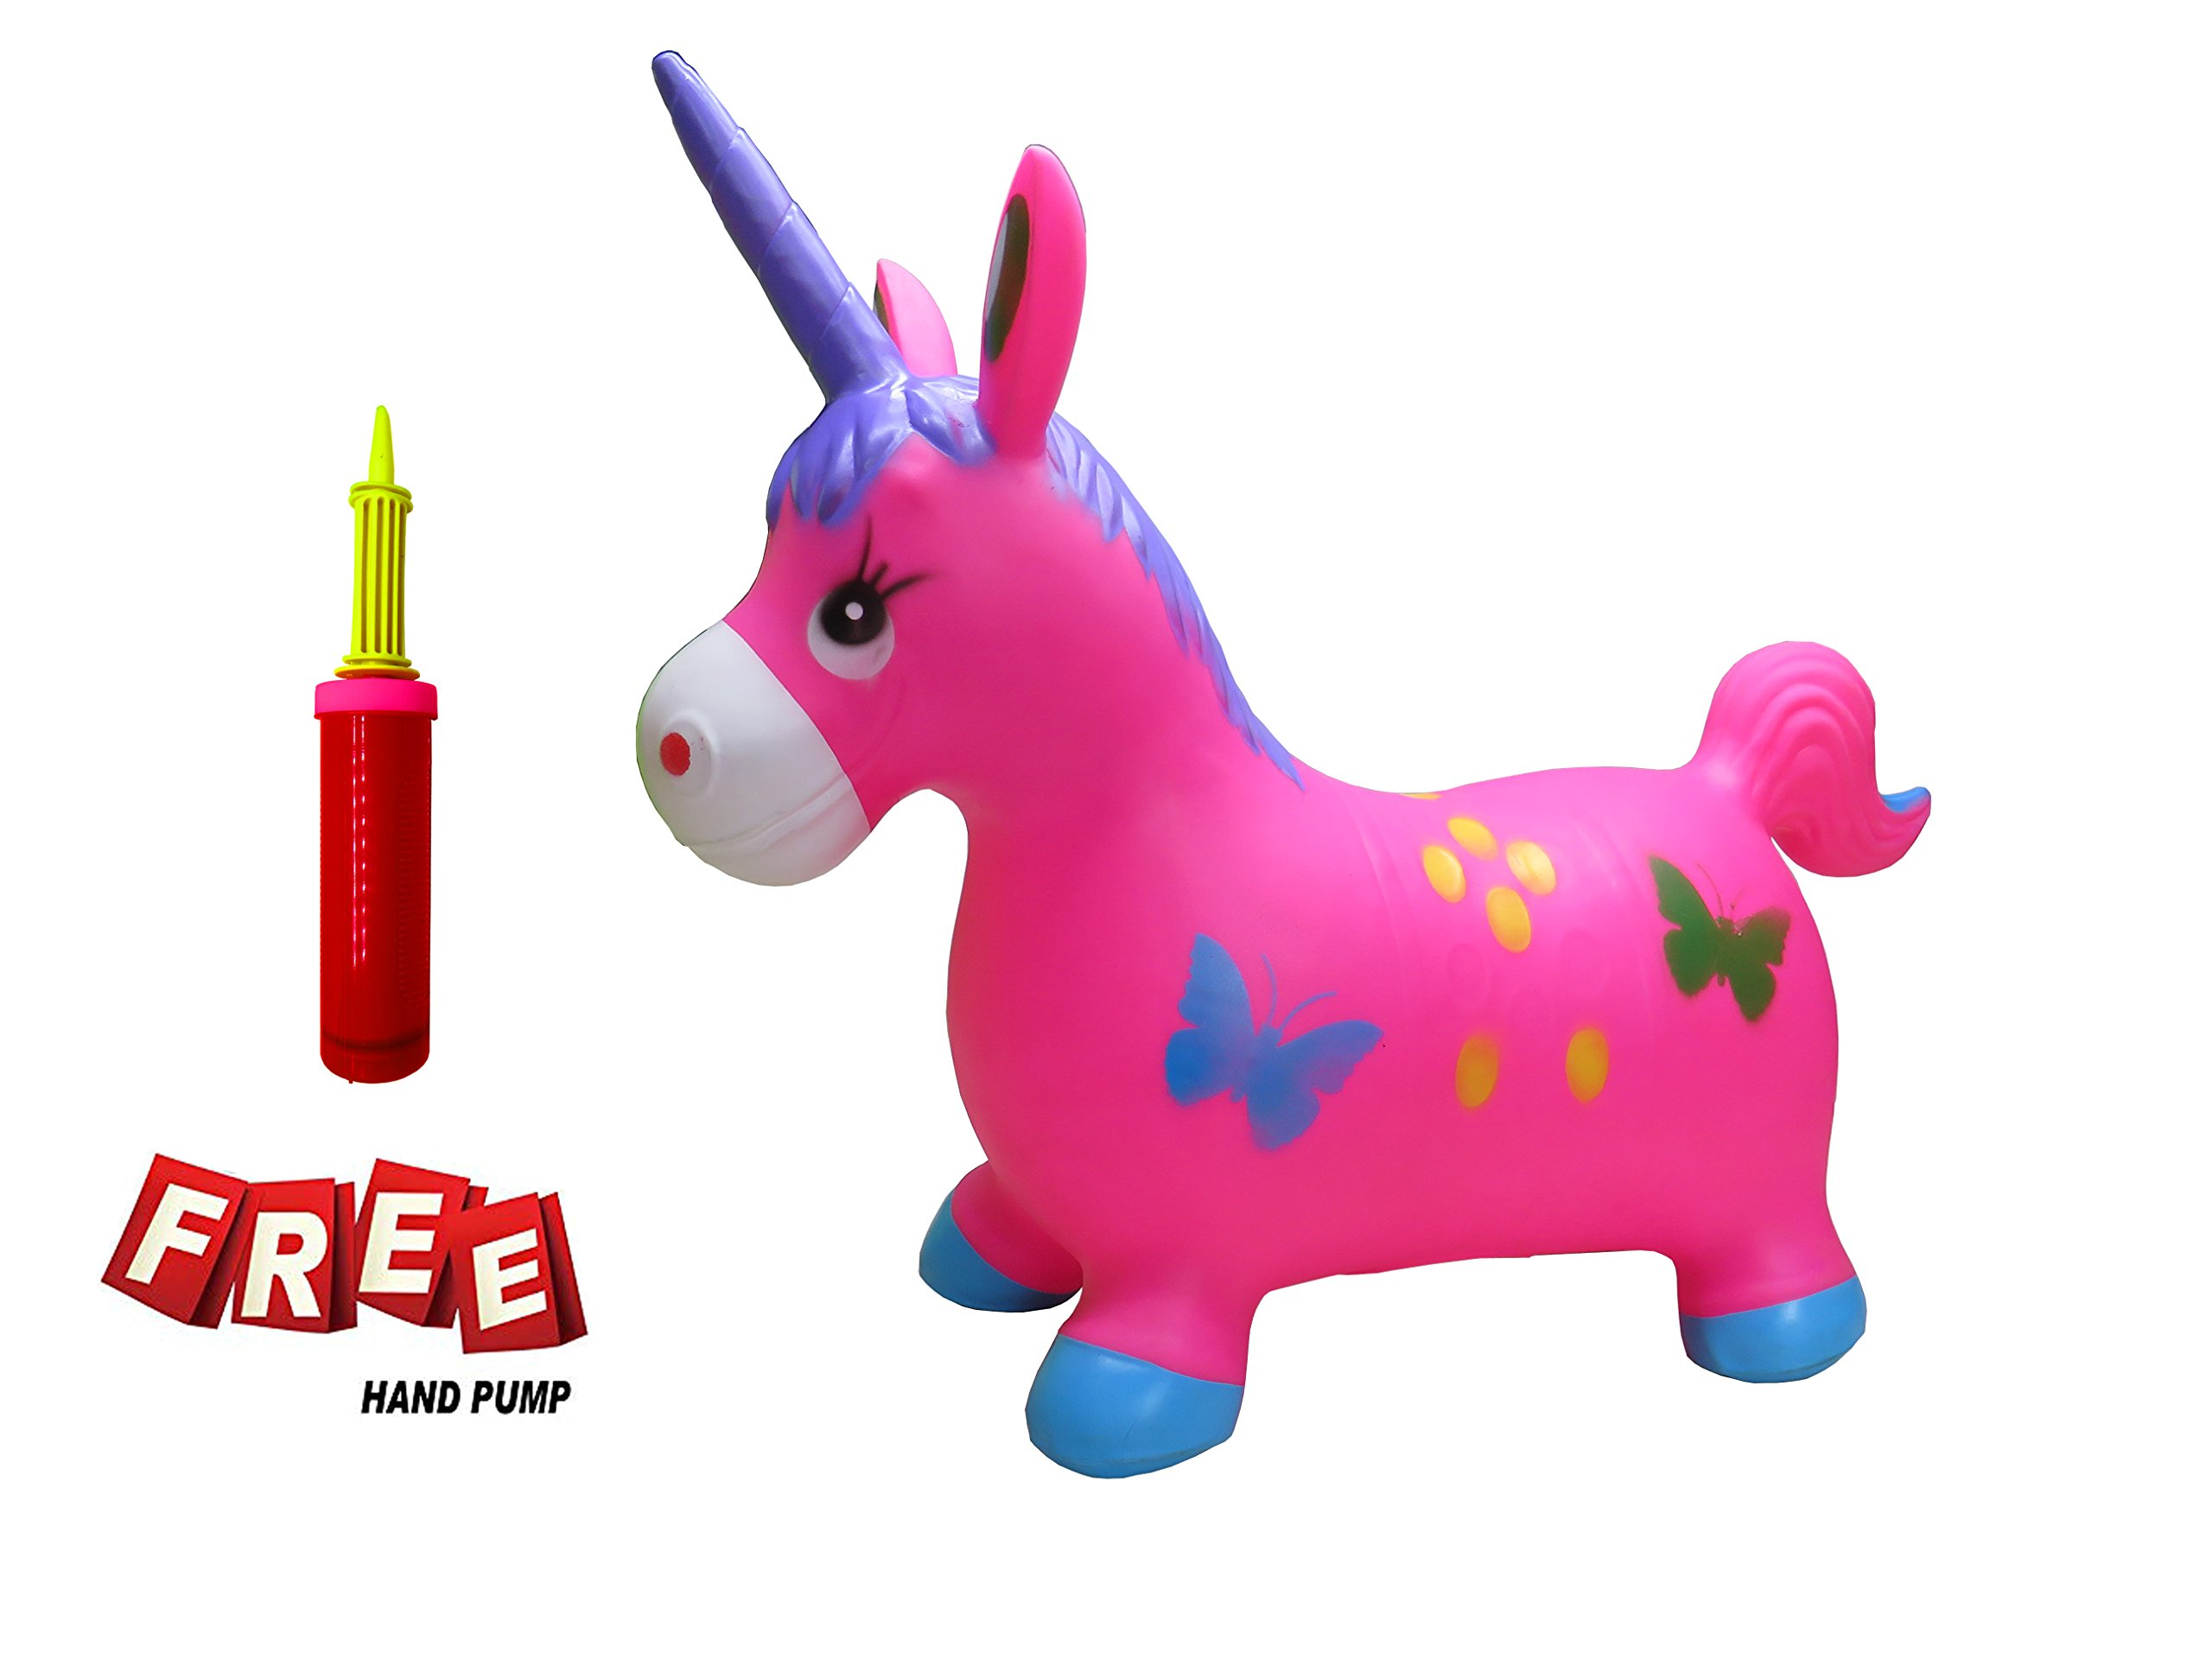 Welliboom Unicorn Hopper Kit, Pump Included, Inflatable Jumping Unicorn, Space Hopper, Ride-on Bouncy Unicorn Horse Hopper, Sit and Bounce, 5-Colors Available (Rose)